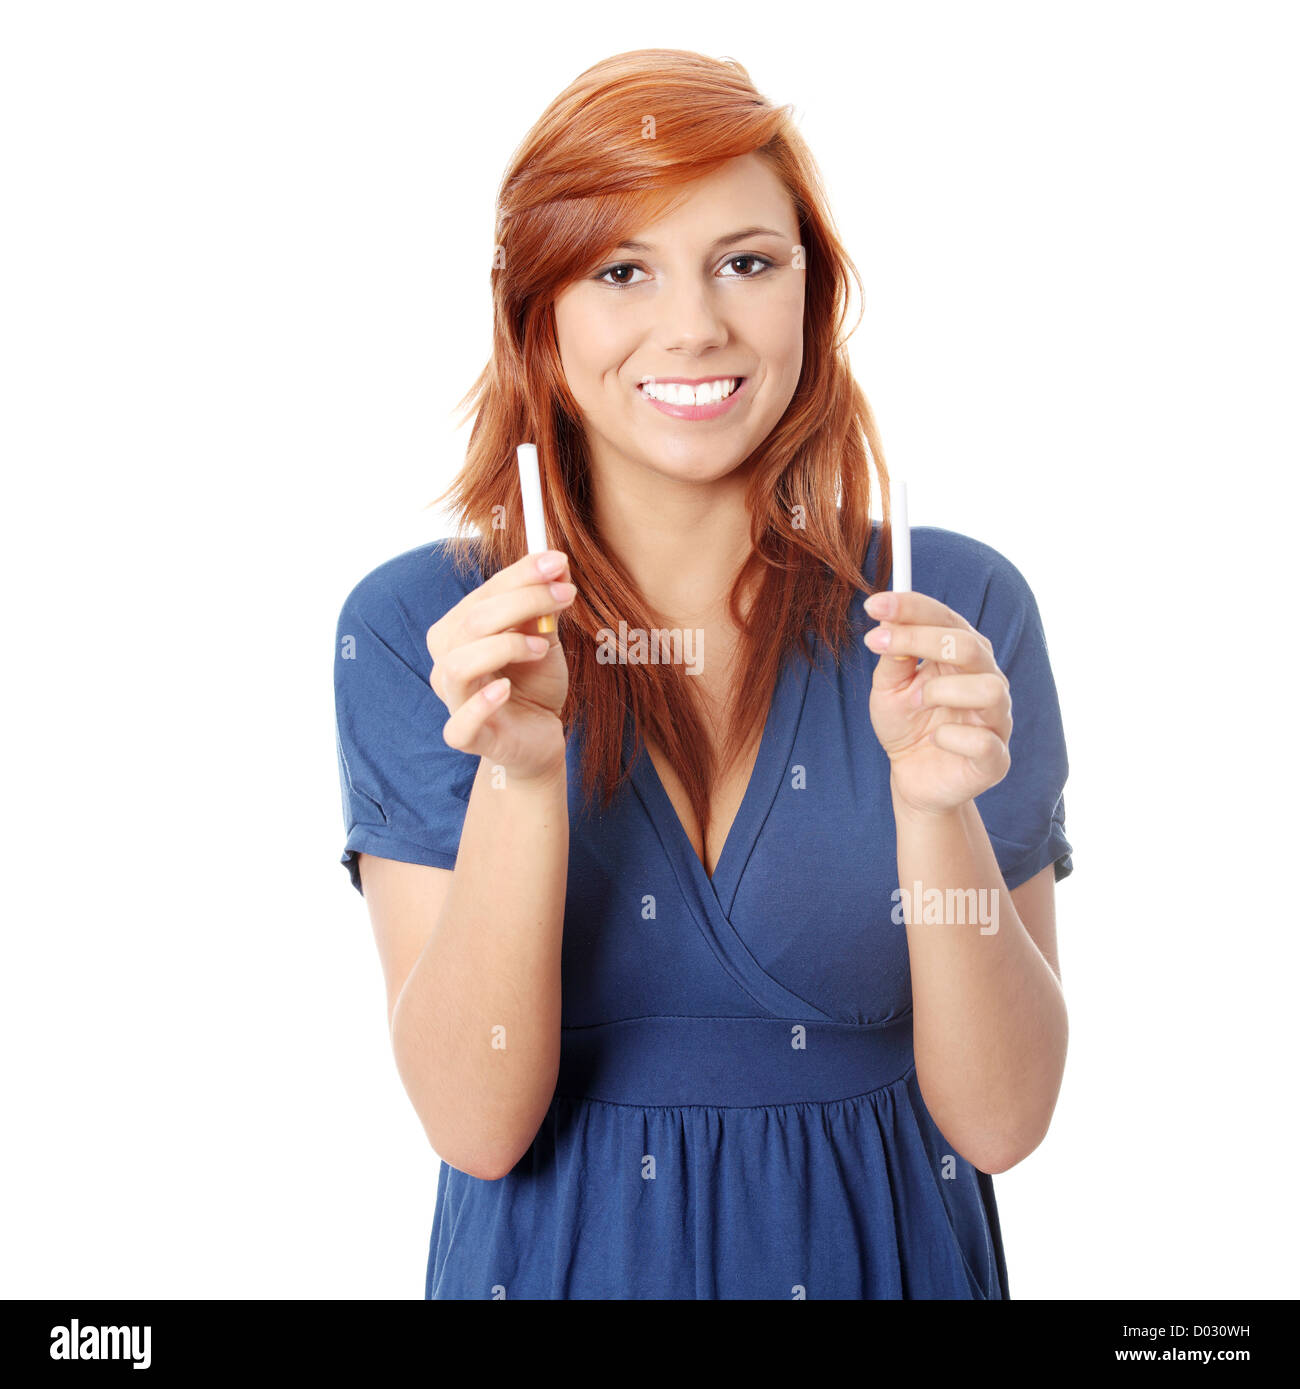 Young woman holding cigarette and electronic cigarette, isolated on white - Stock Image